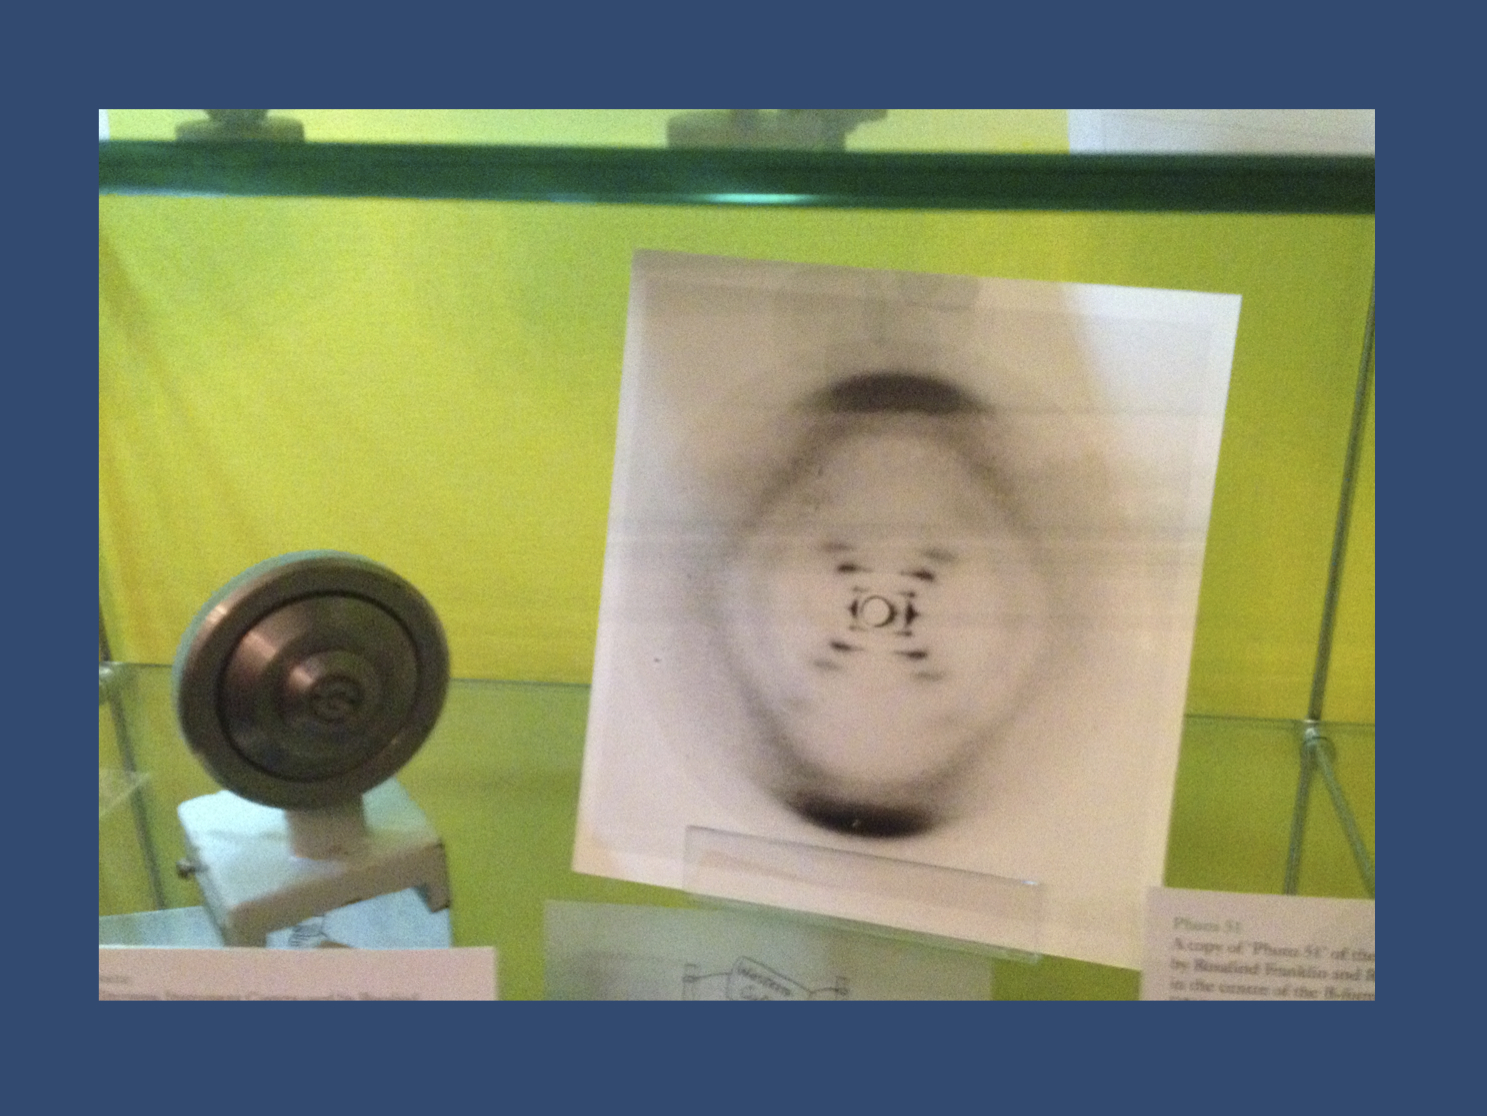 The initial X-ray of DNA by Rosalind Franklin, which led to the suggestion that DNA might actually be a double helix (photo taken at King's College, London in 2012). In contrast to her peers Watson, Crick, and Wilkins, Franklin did not receive a Nobel Prize.